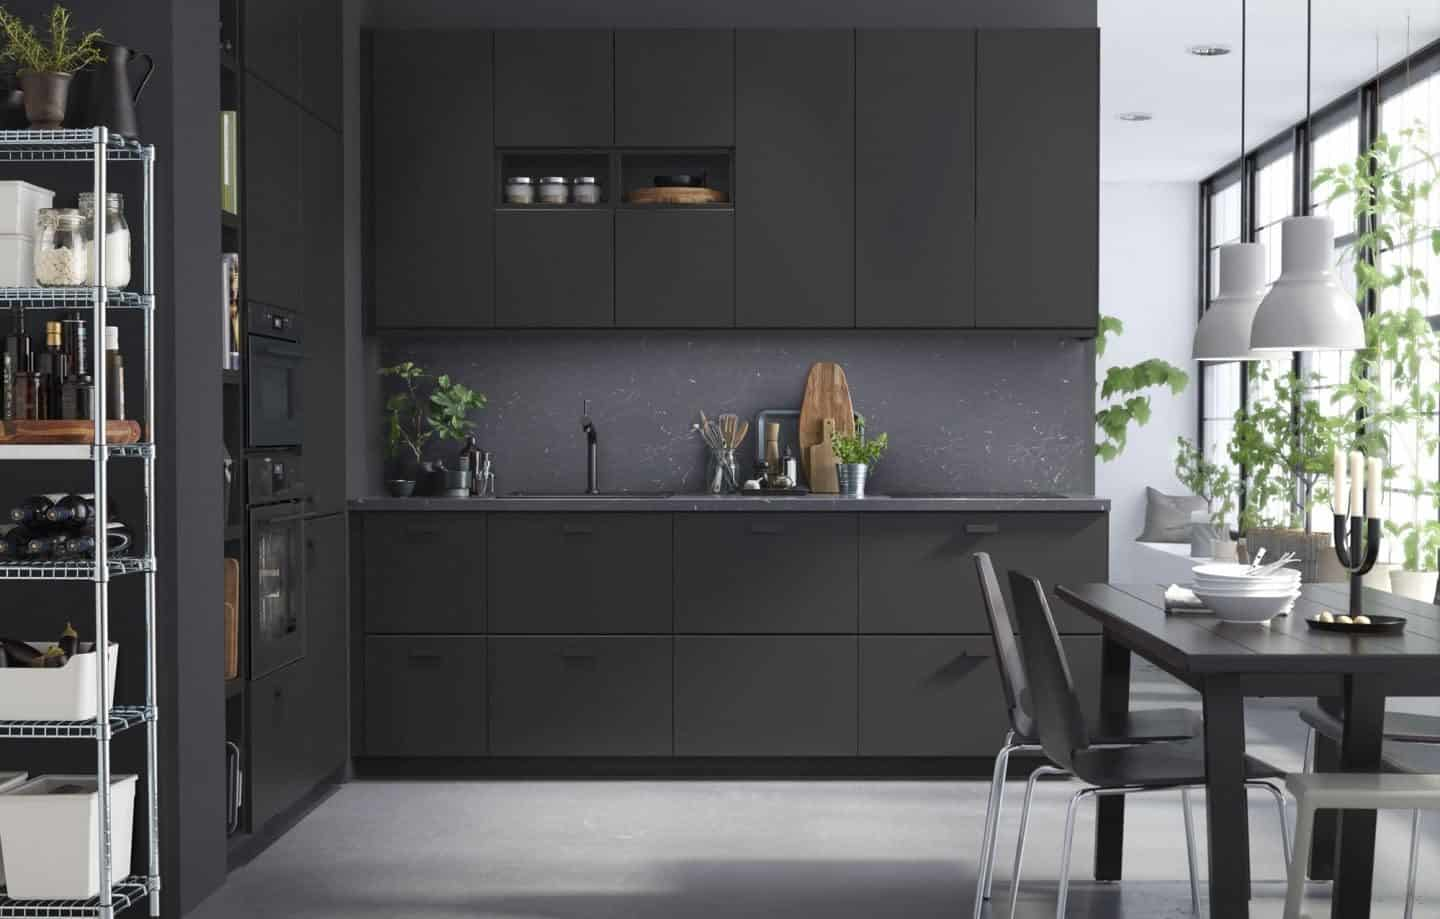 IKEA is transitioning to the Circular Economy model. The Kungsbacka kitchen fronts are made entirely from 100% recycled FSC(R) certified wood and PET-bottles.